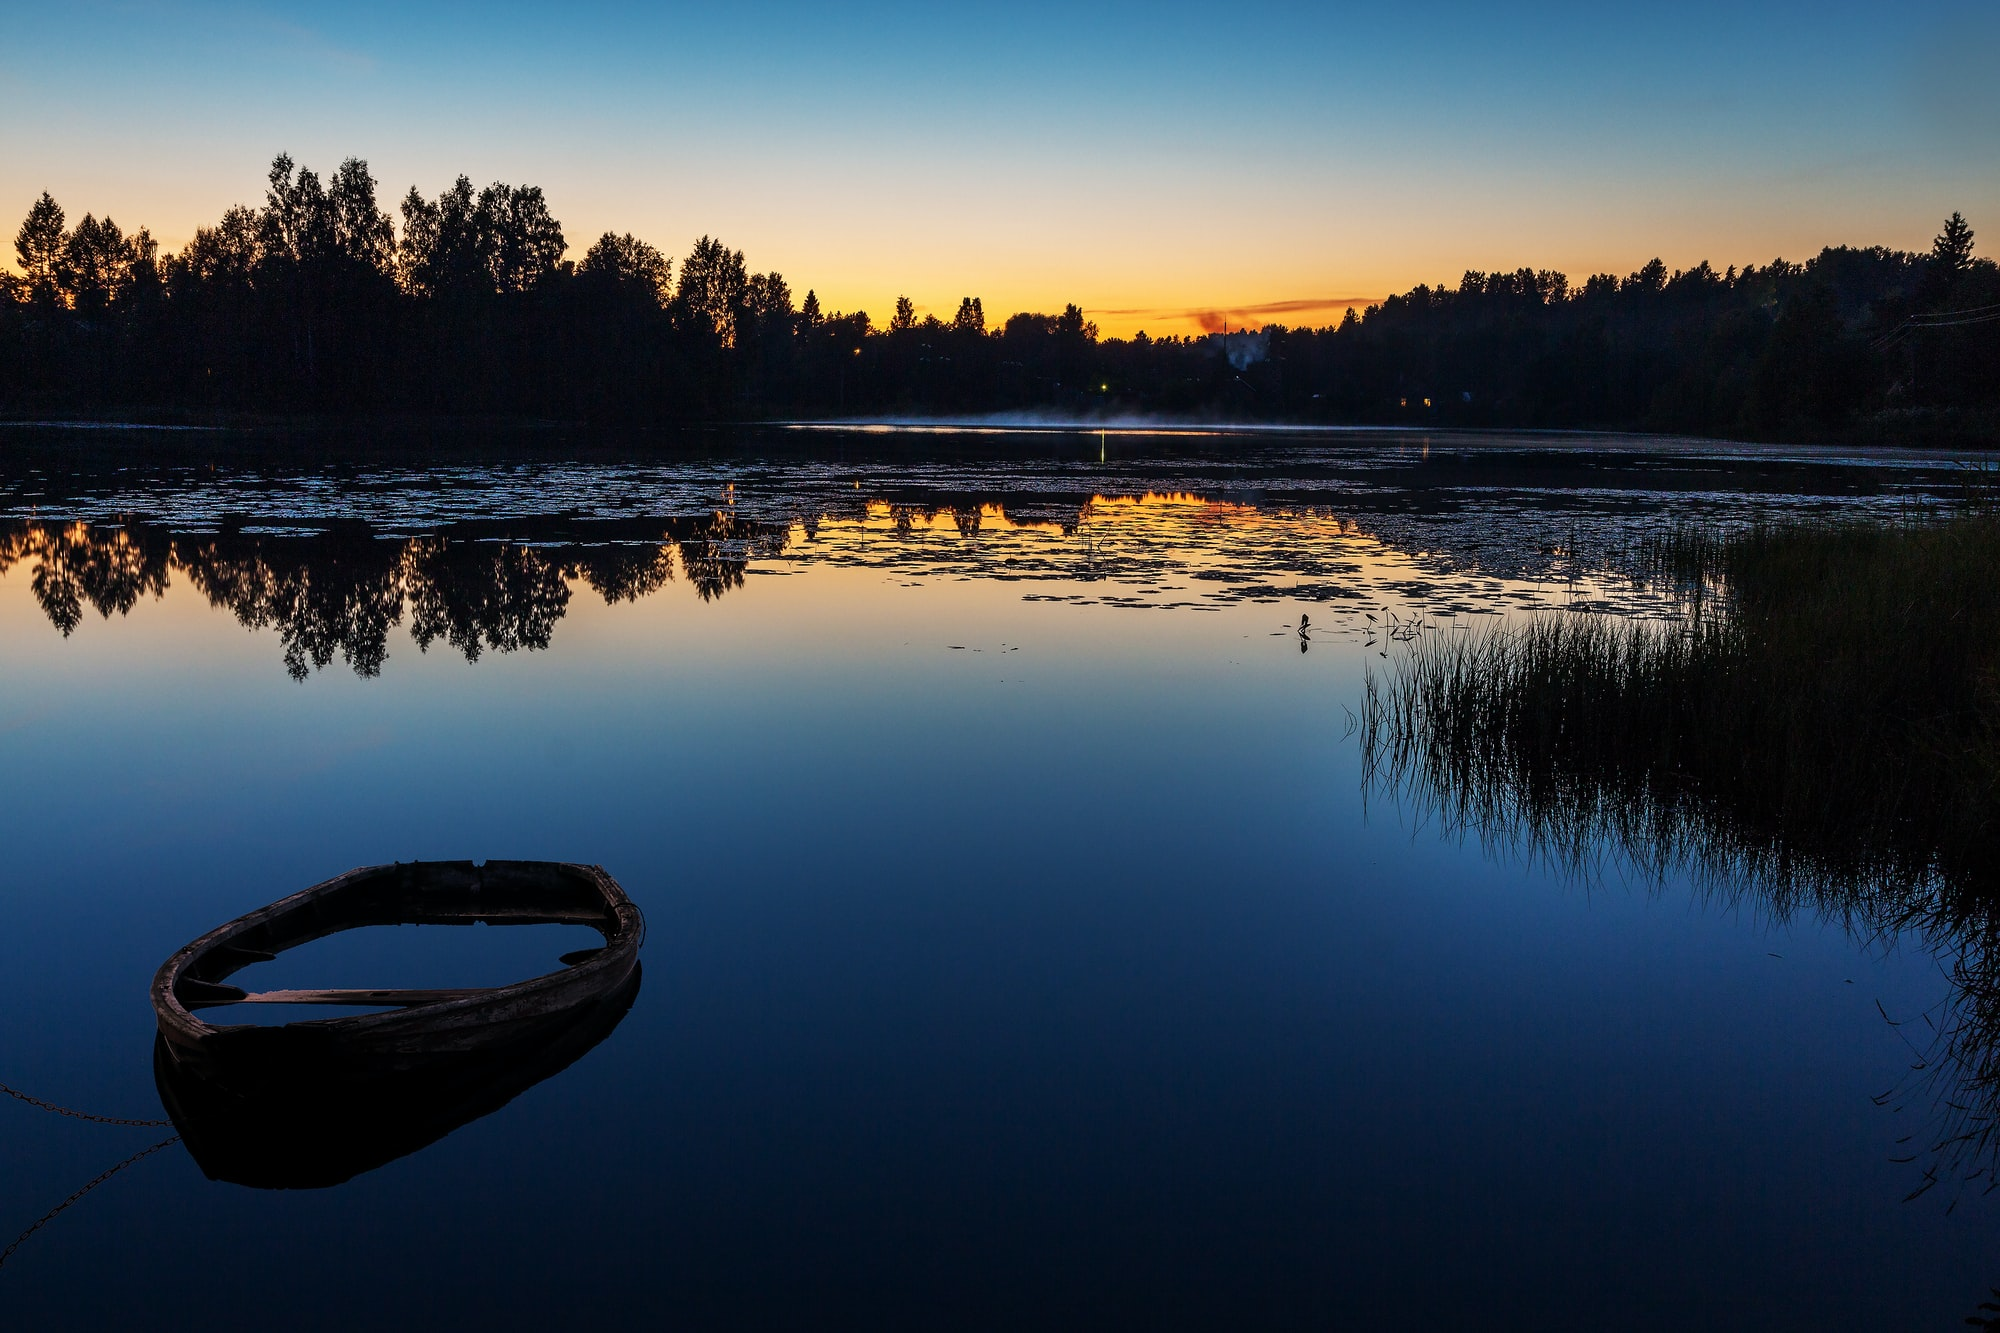 A lone boat on a lake, just before sunset.